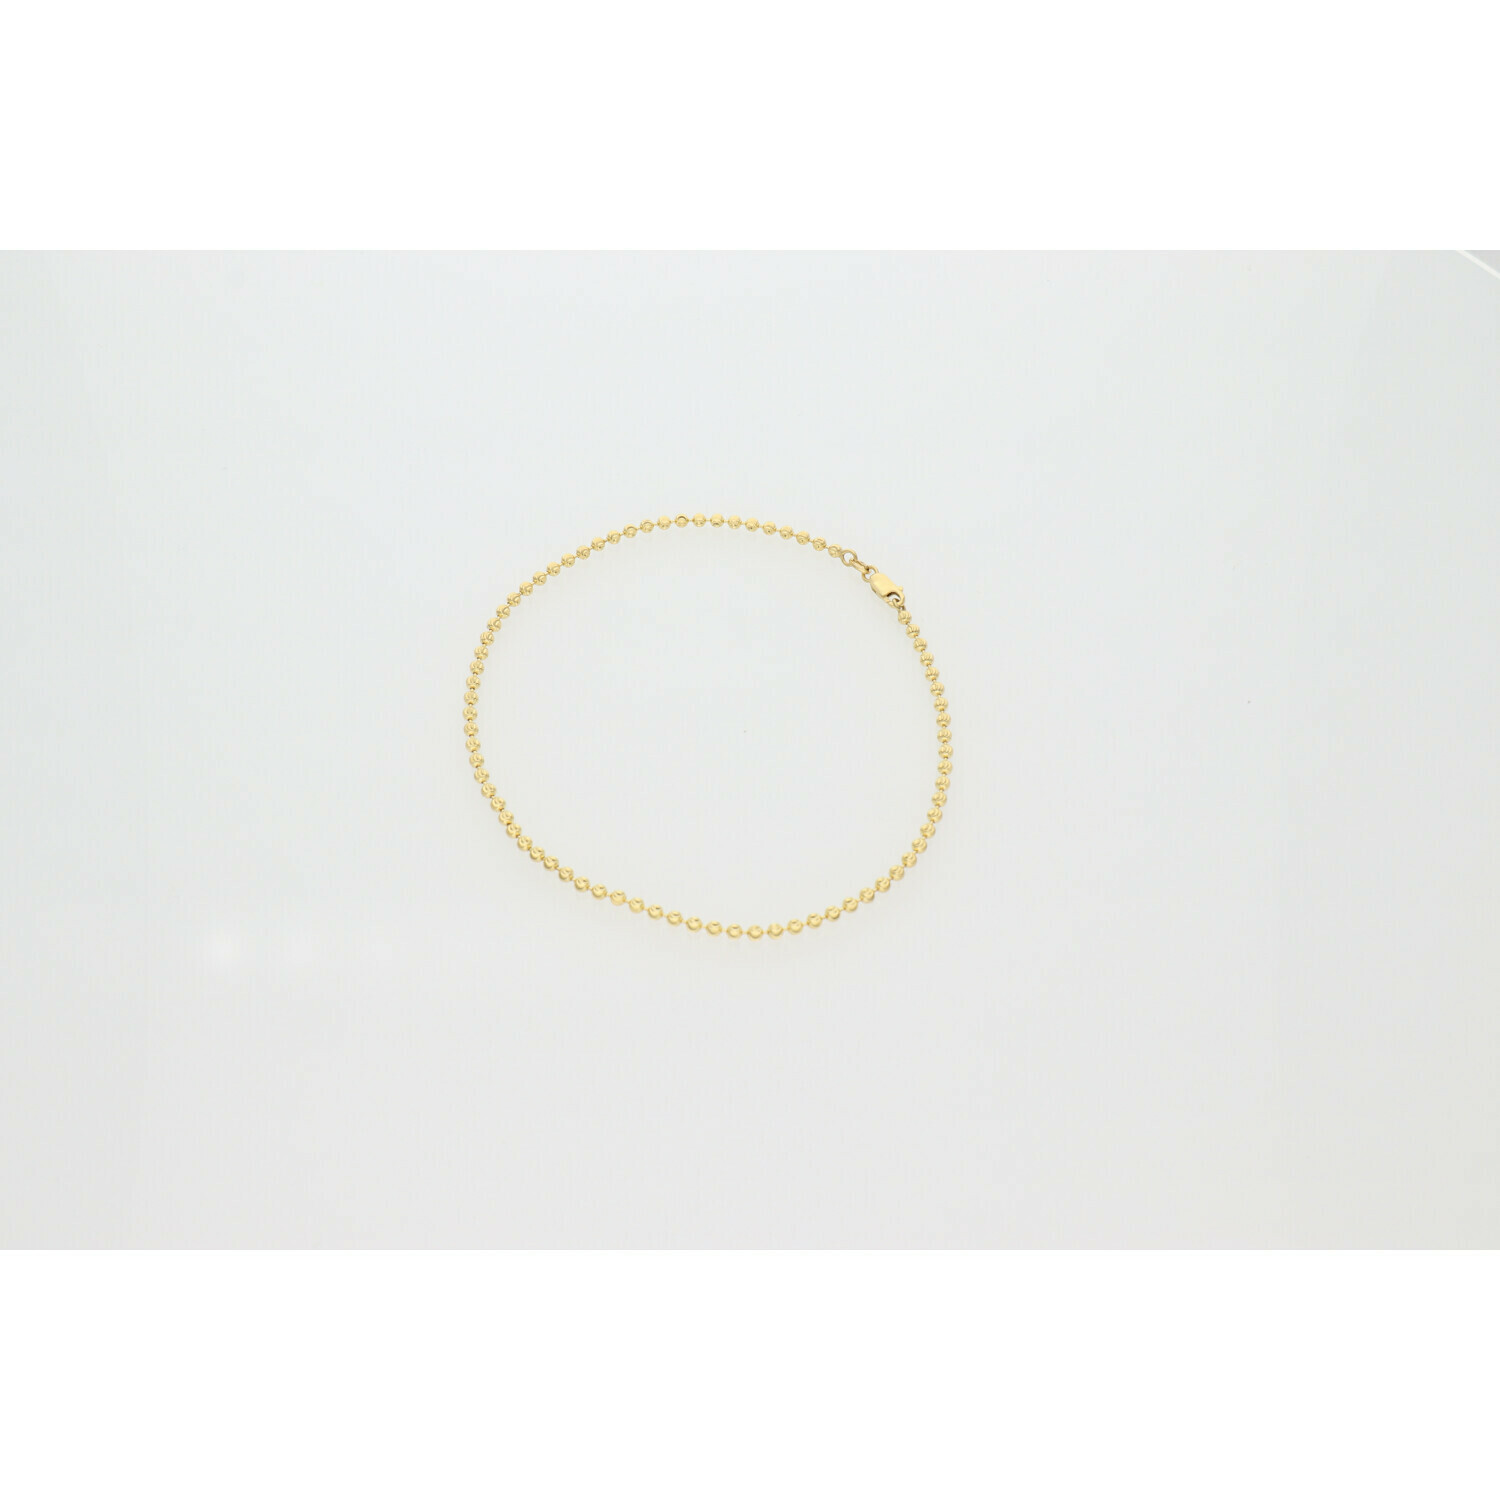 10 Karat Gold Moon Anklet